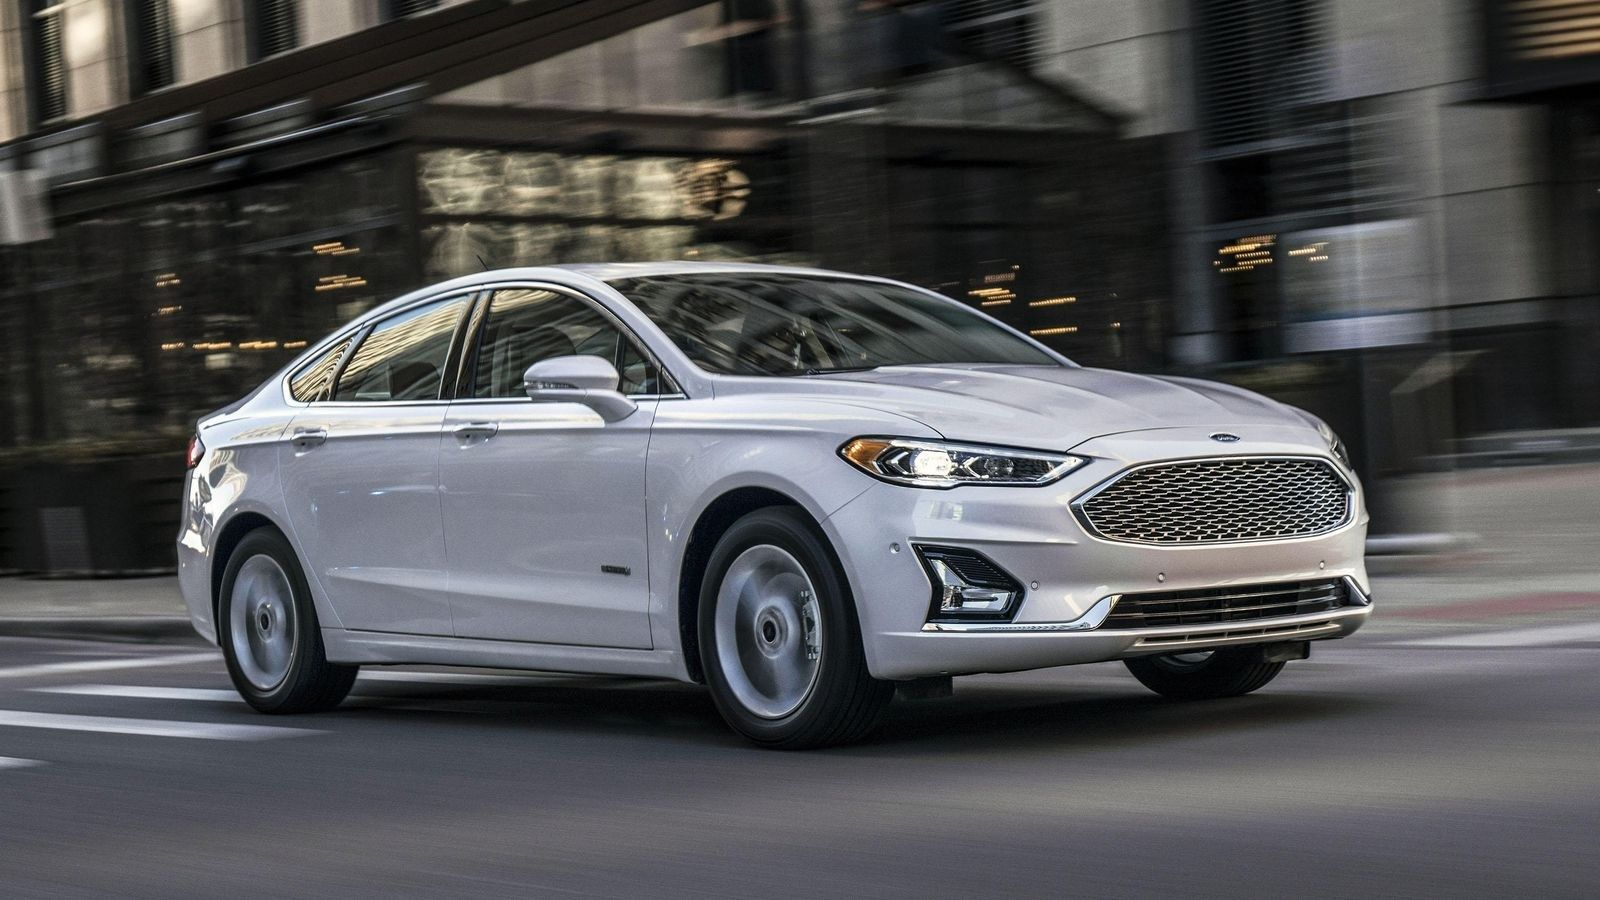 When Will Ford Cars In 2020 Come Out Ford Fusion Ford Thunderbird Car Ford